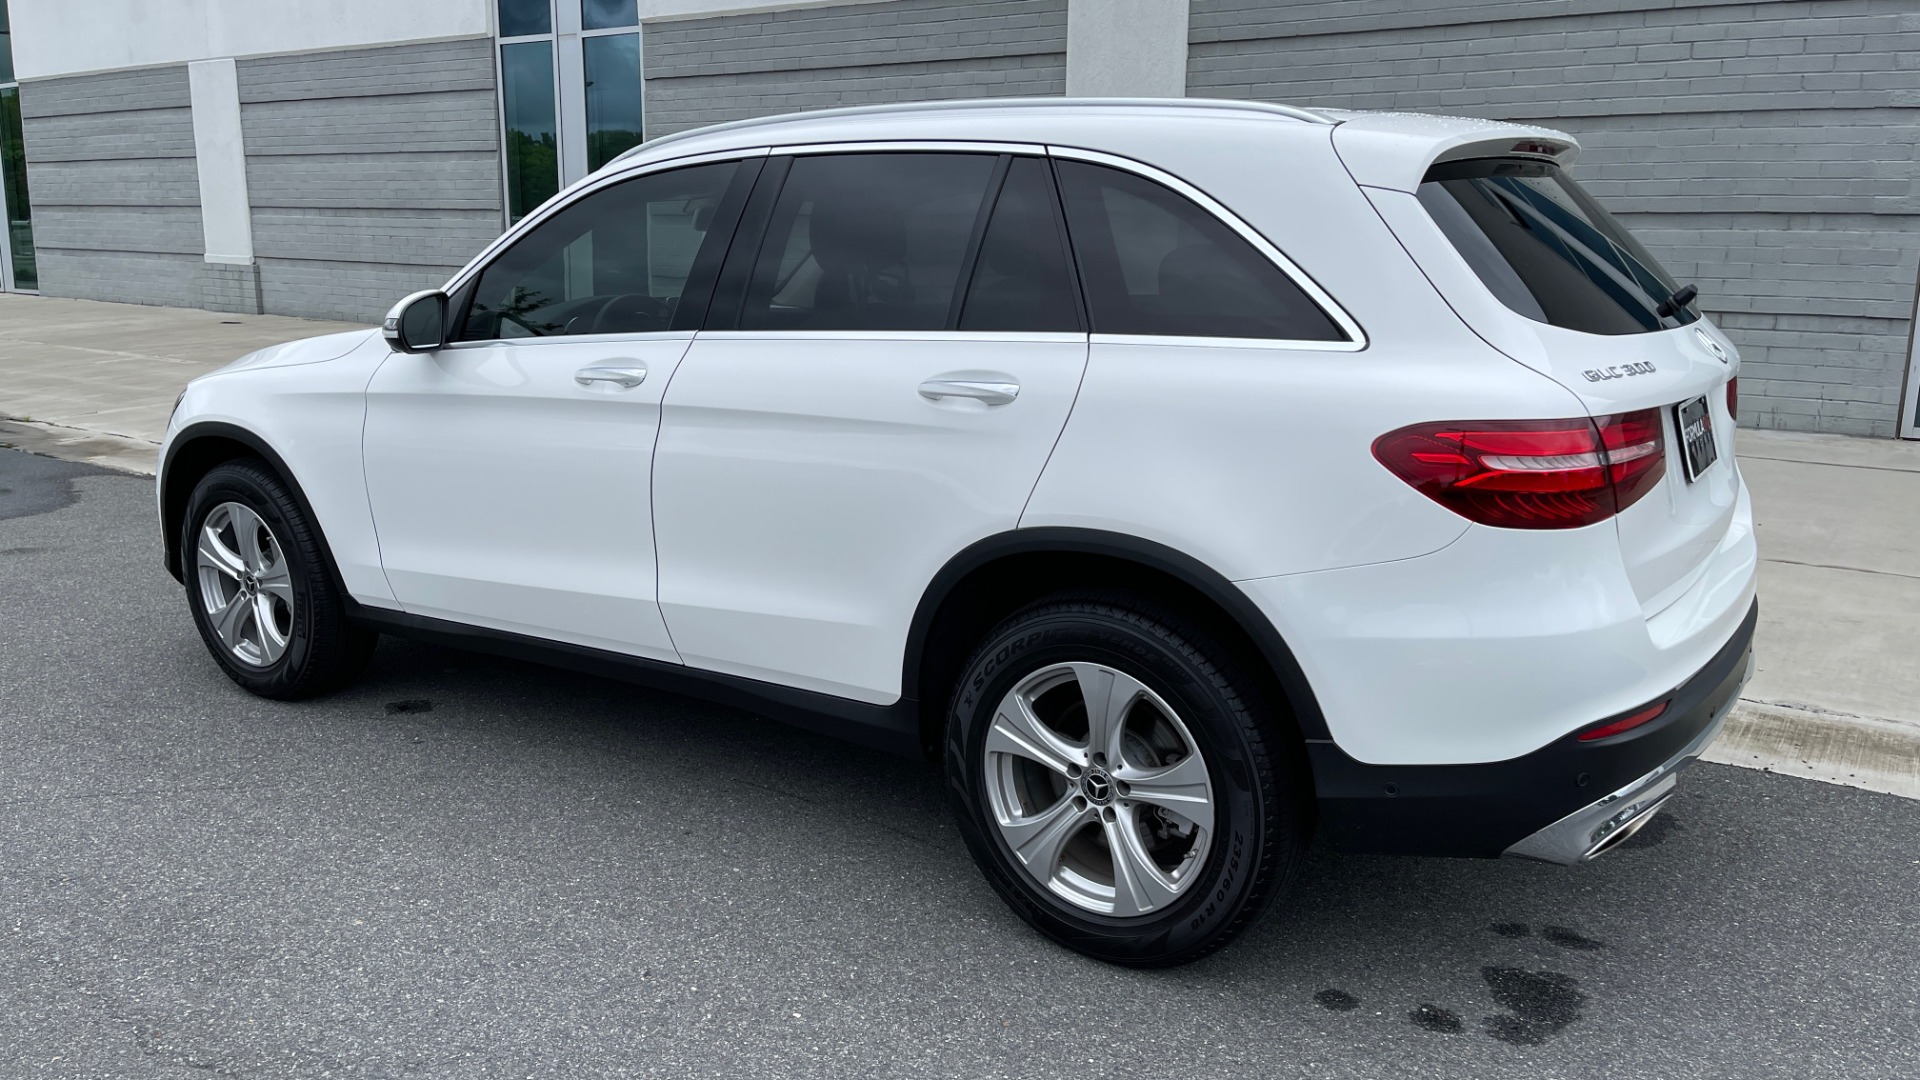 Used 2018 Mercedes-Benz GLC 300 PREMIUM / PANO-ROOF / HTD STS / PARK ASST / REARVIEW for sale $34,613 at Formula Imports in Charlotte NC 28227 5